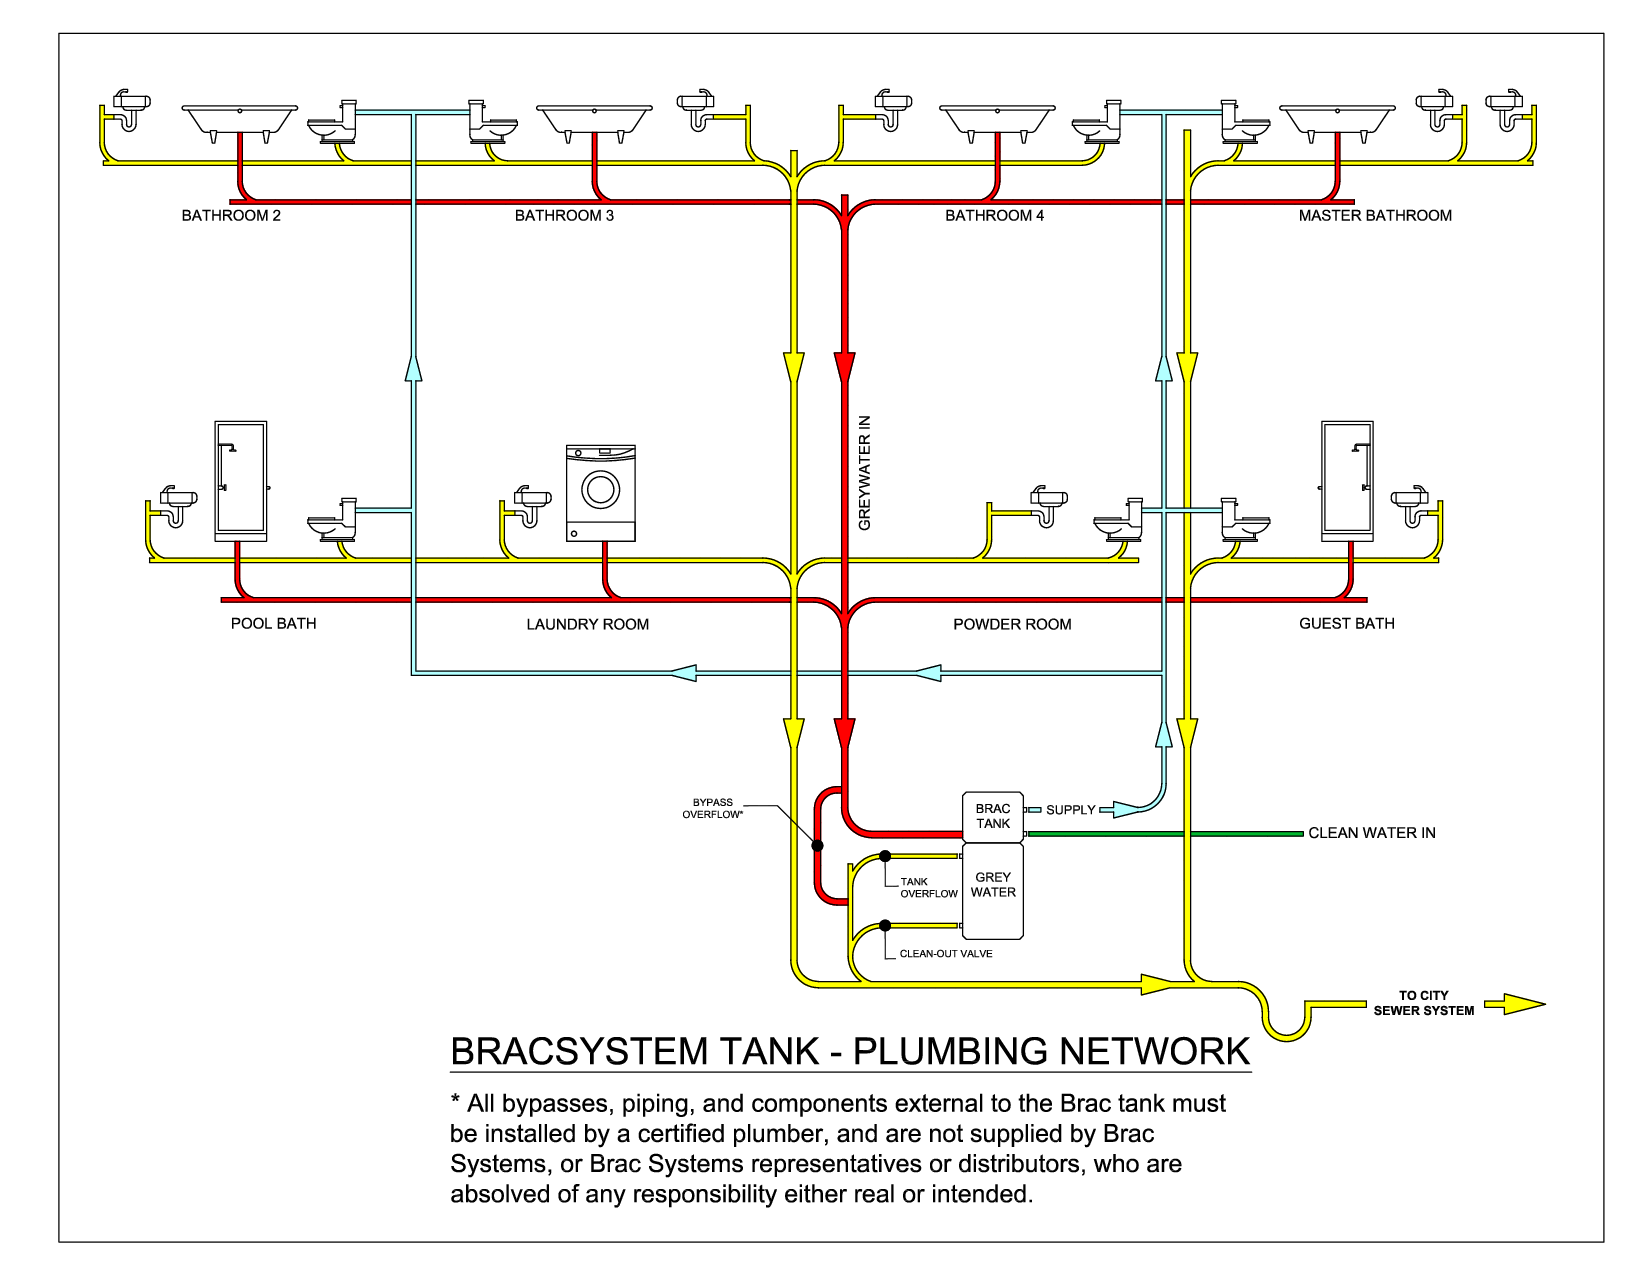 Mobile Home Plumbing Systems | Plumbing Network Diagrampdf | Modern mobile home in 2019